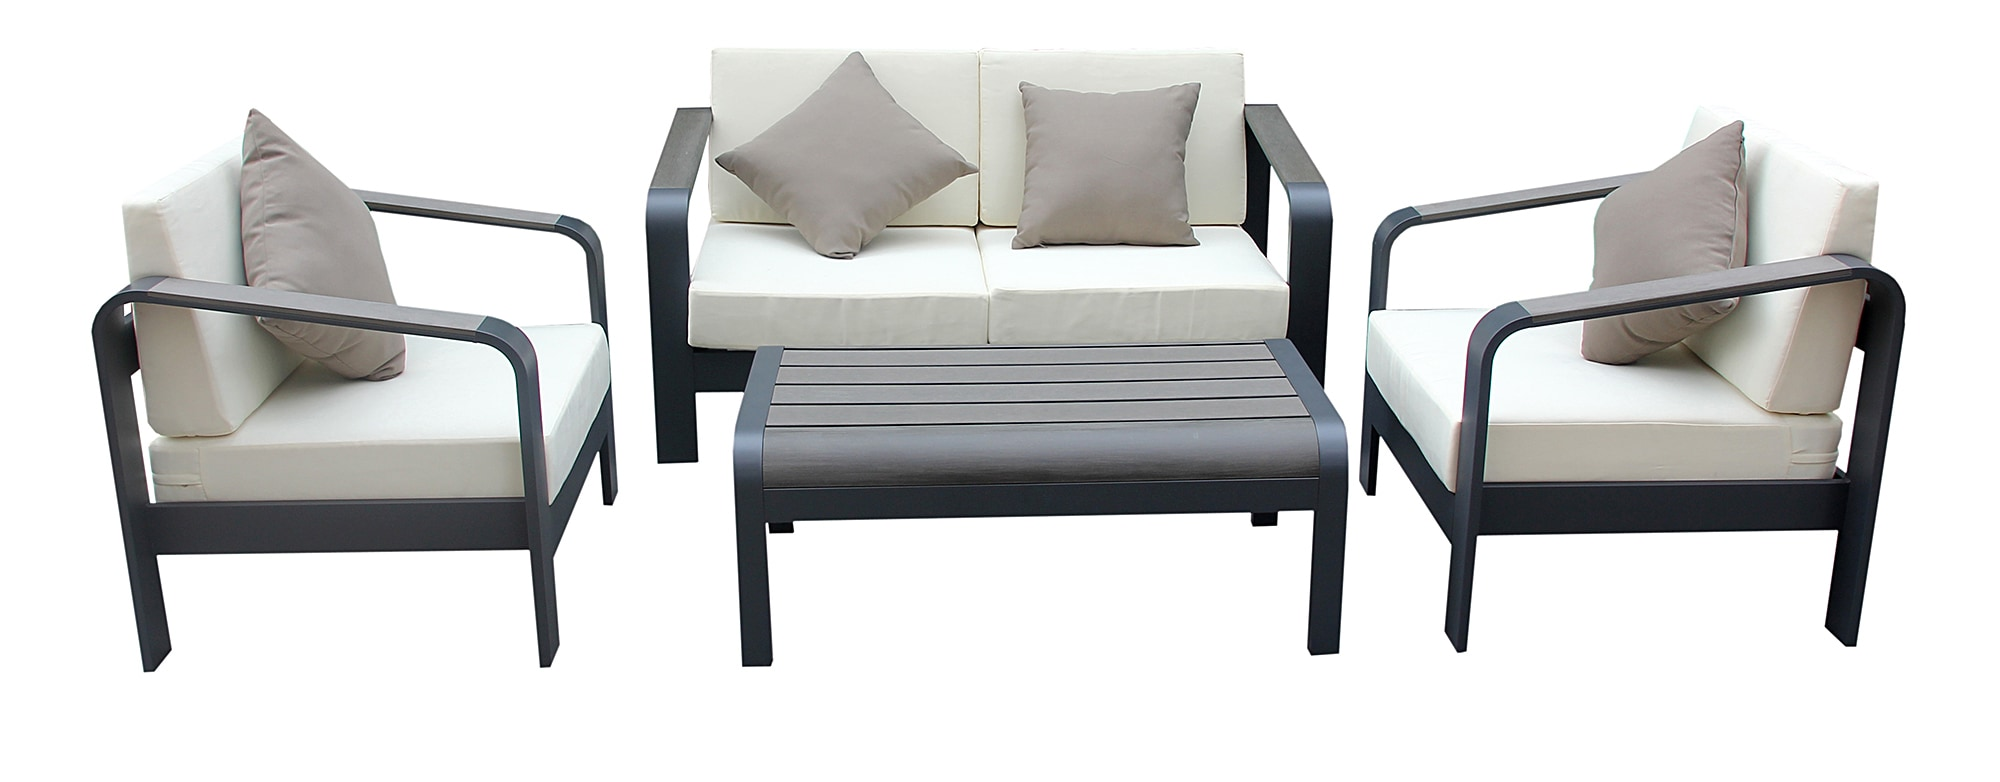 Sofa Set In Metal Kontiki Conversation Sets Metal Sofa Sets Leeno 4 Piece